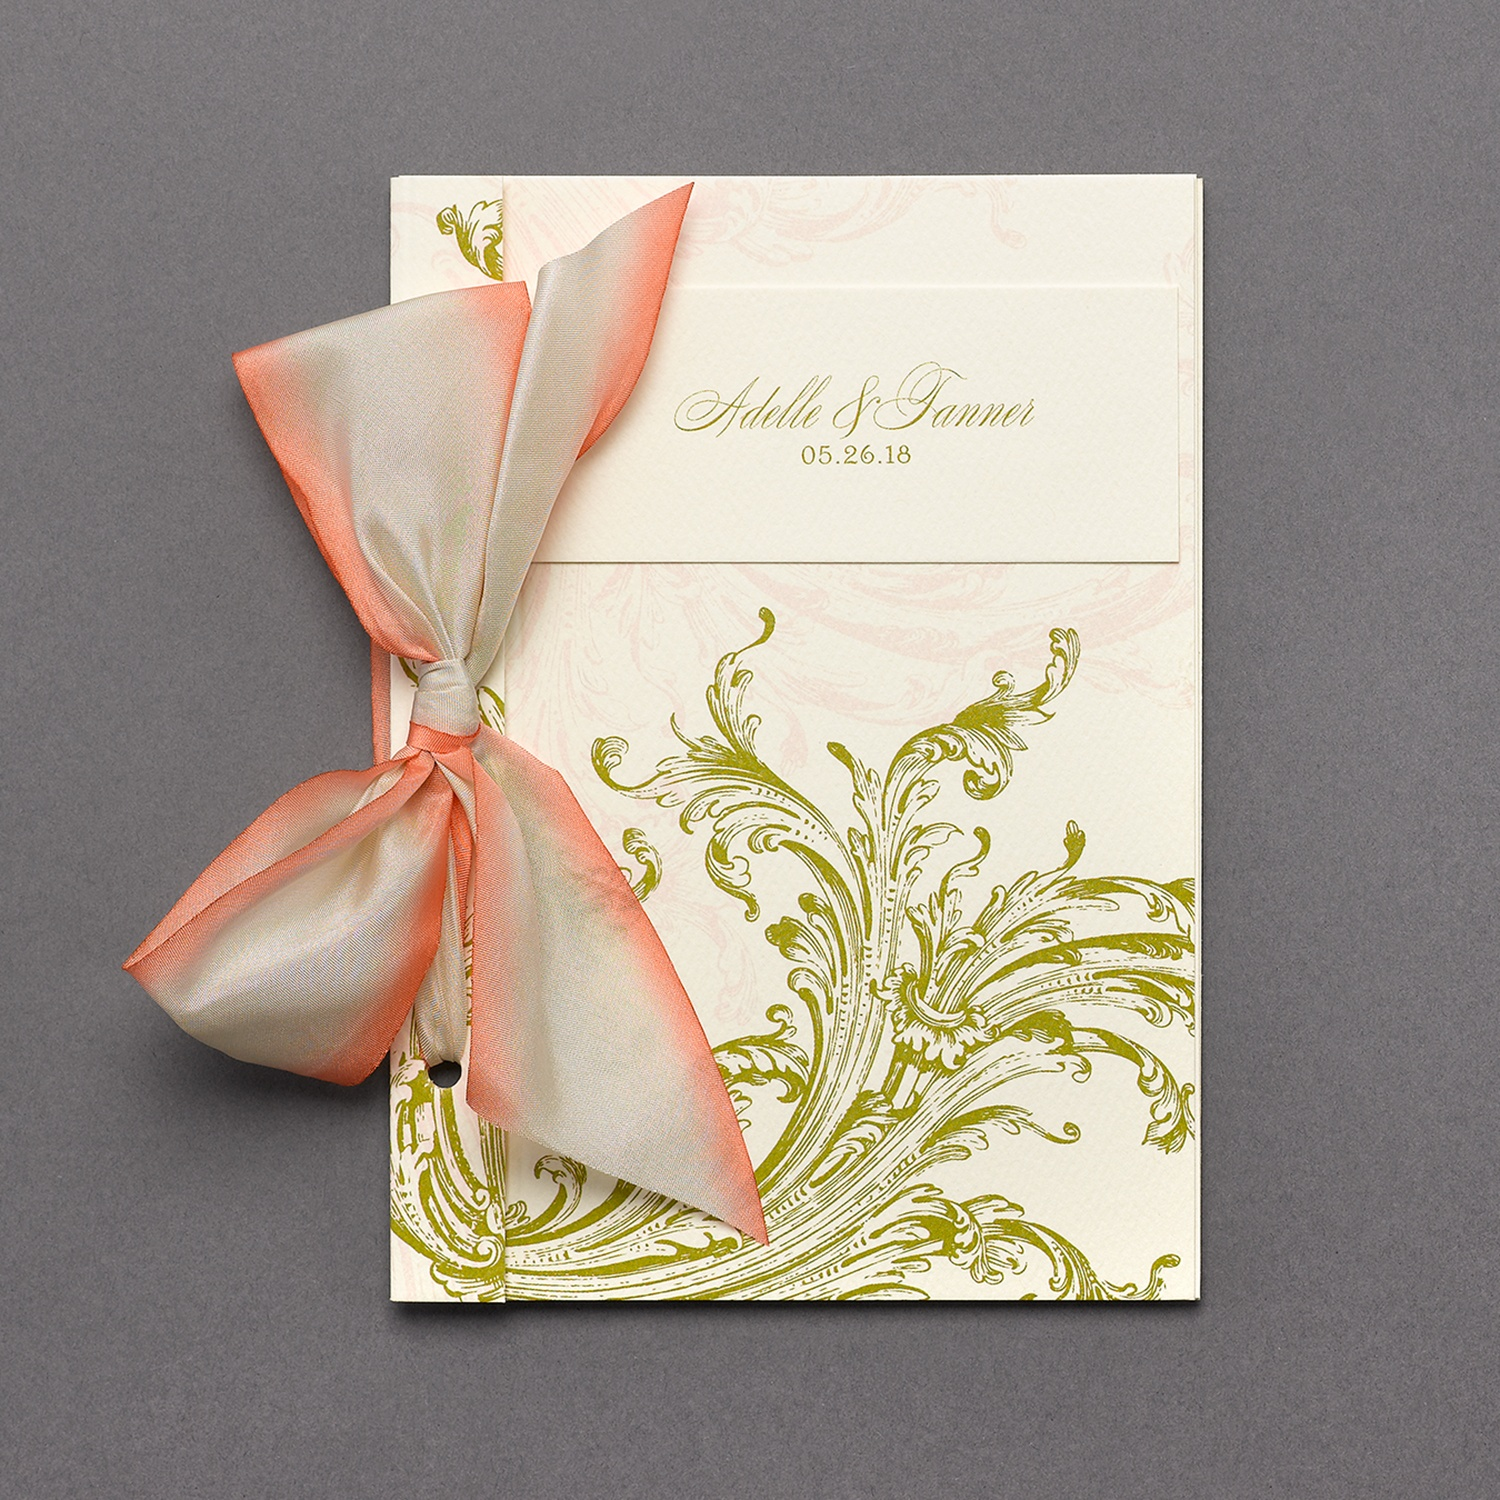 wedding invitations should go out early so your guests are informed on time and can send their rsvps early you need the rsvp count early in order to get - When Should Wedding Invites Go Out